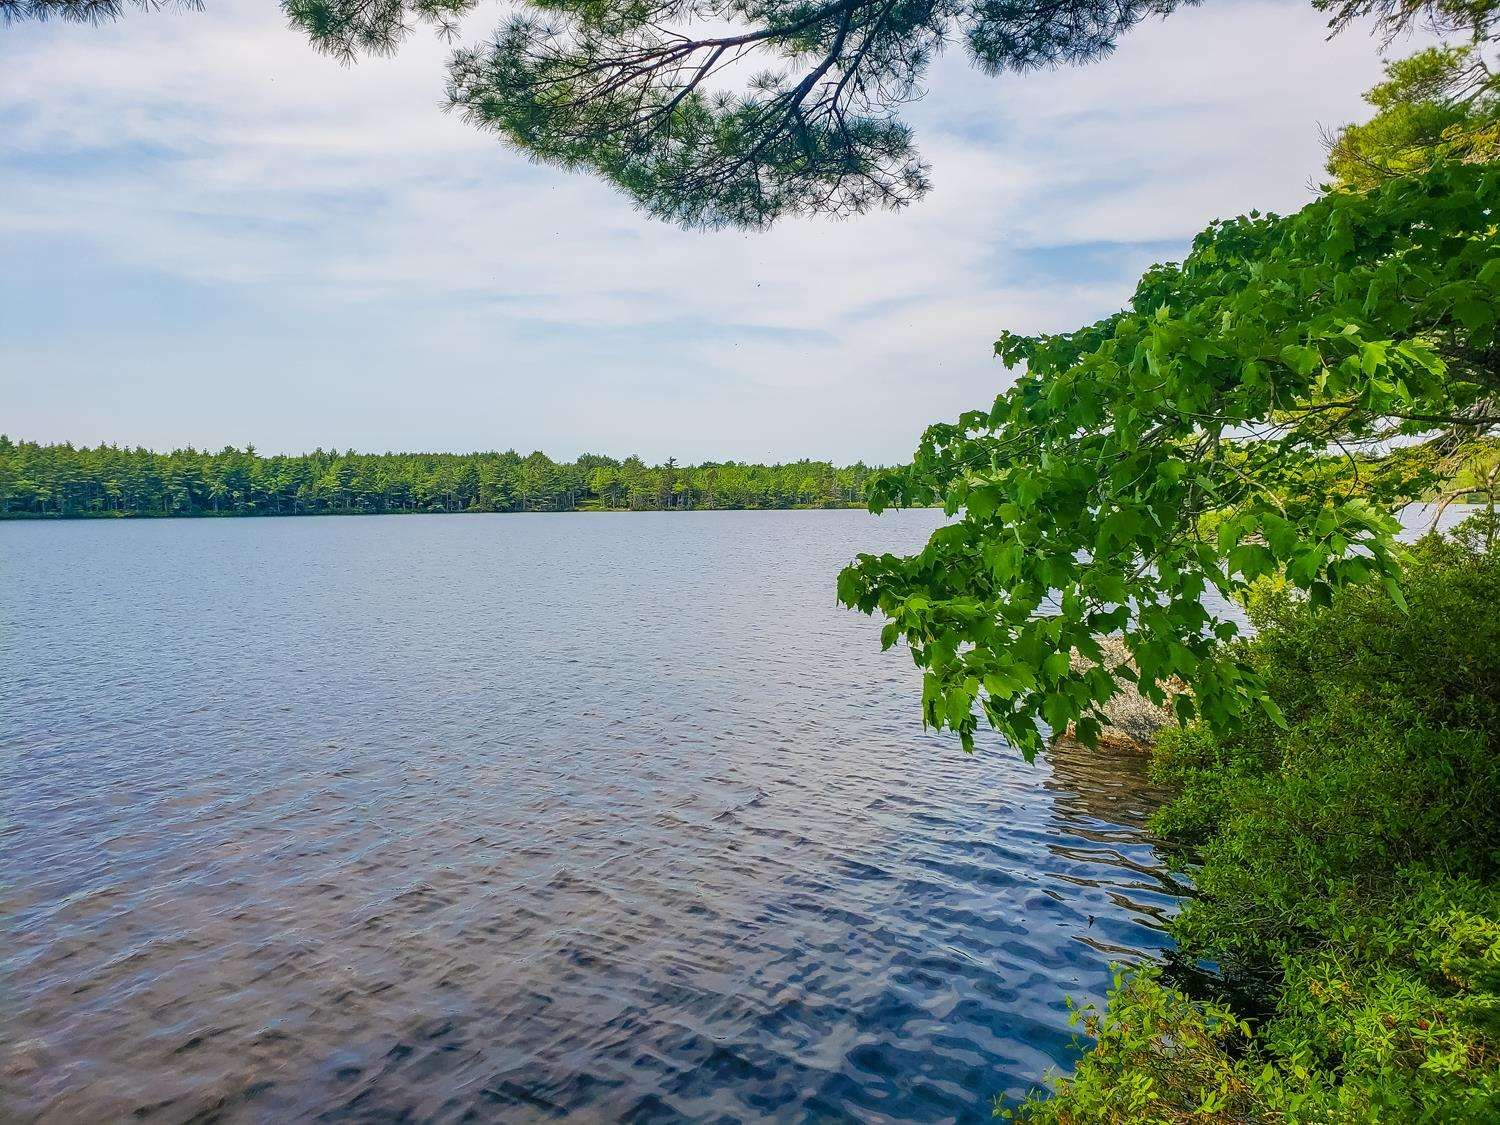 Main Photo: Lot 101 Dorey Mills Road in Clearland: 405-Lunenburg County Vacant Land for sale (South Shore)  : MLS®# 202119645